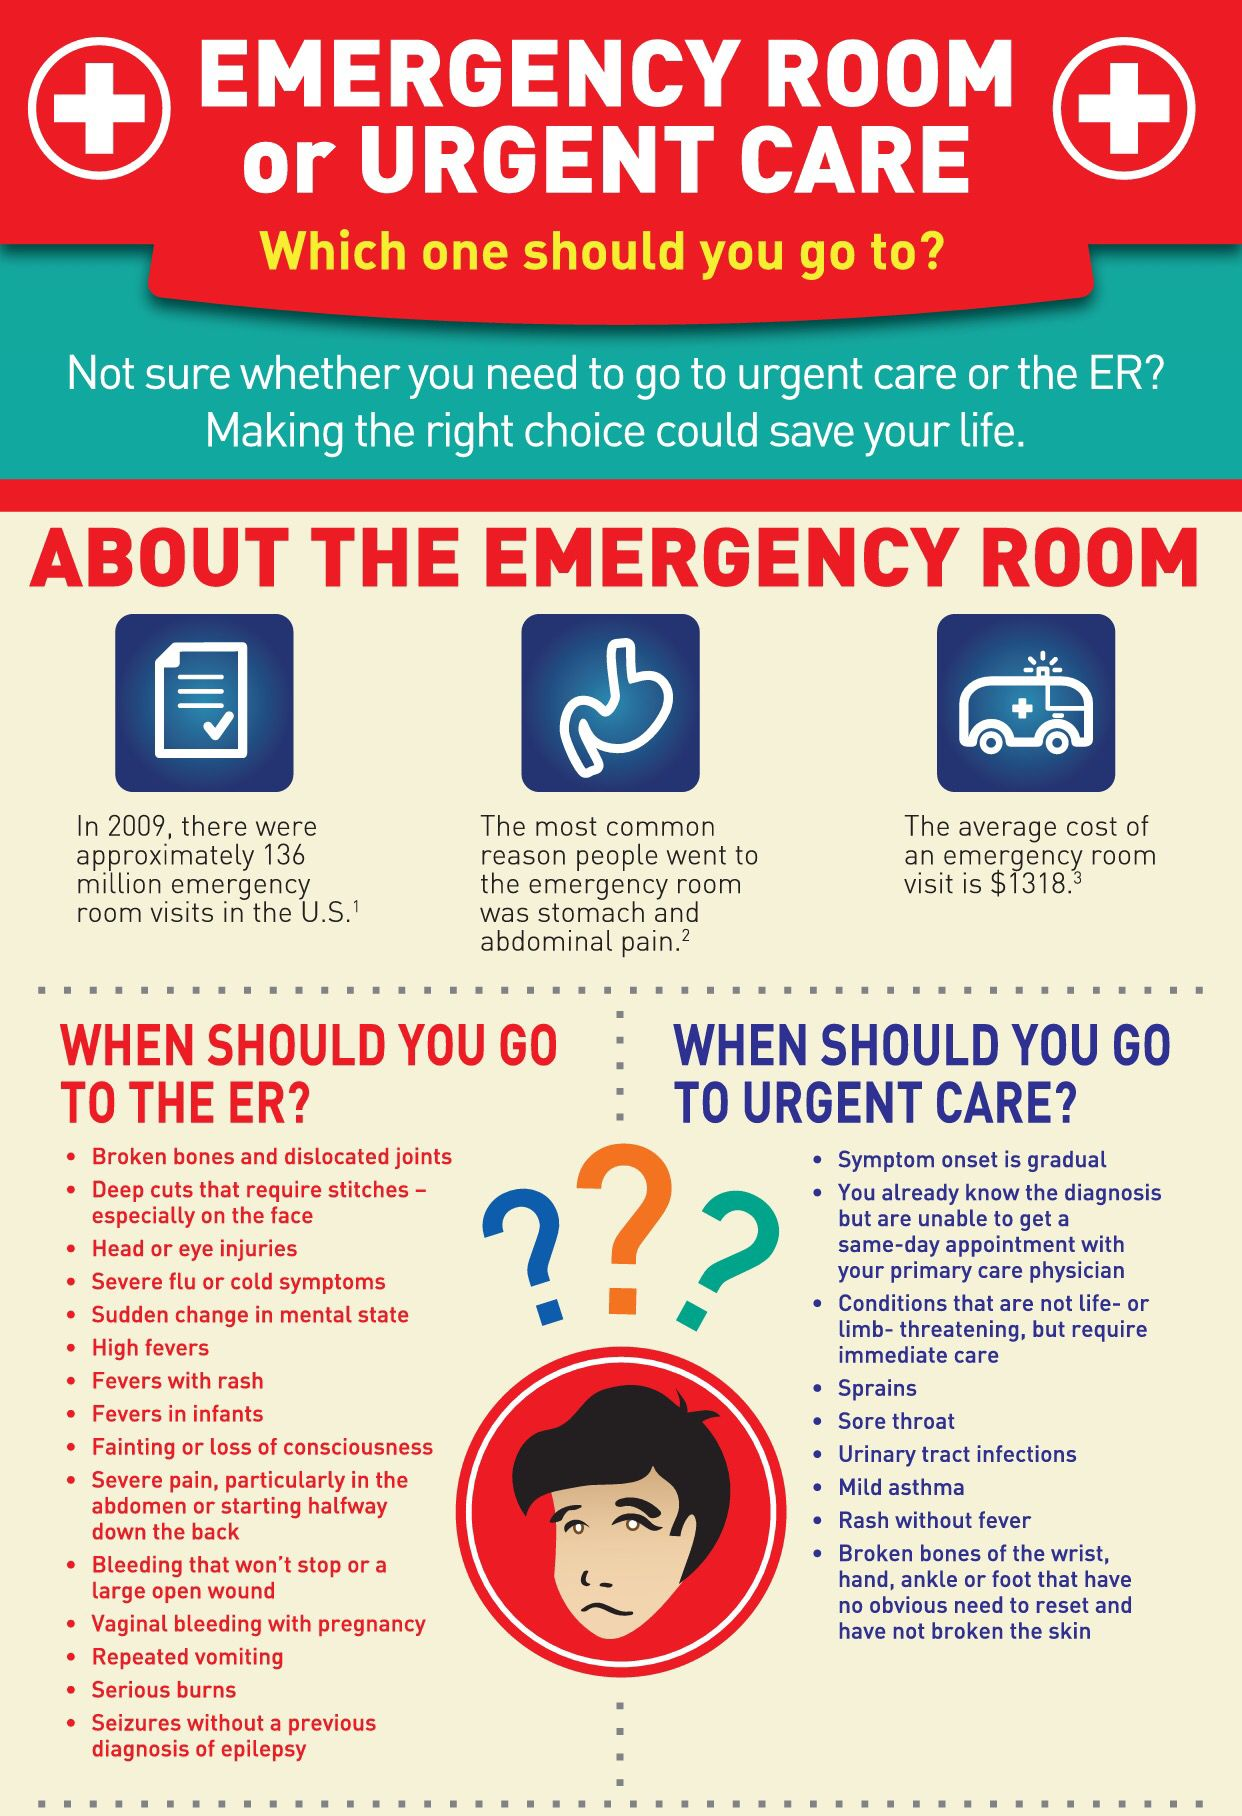 ER IS NOT THE DENTIST, Your doctors office alternative